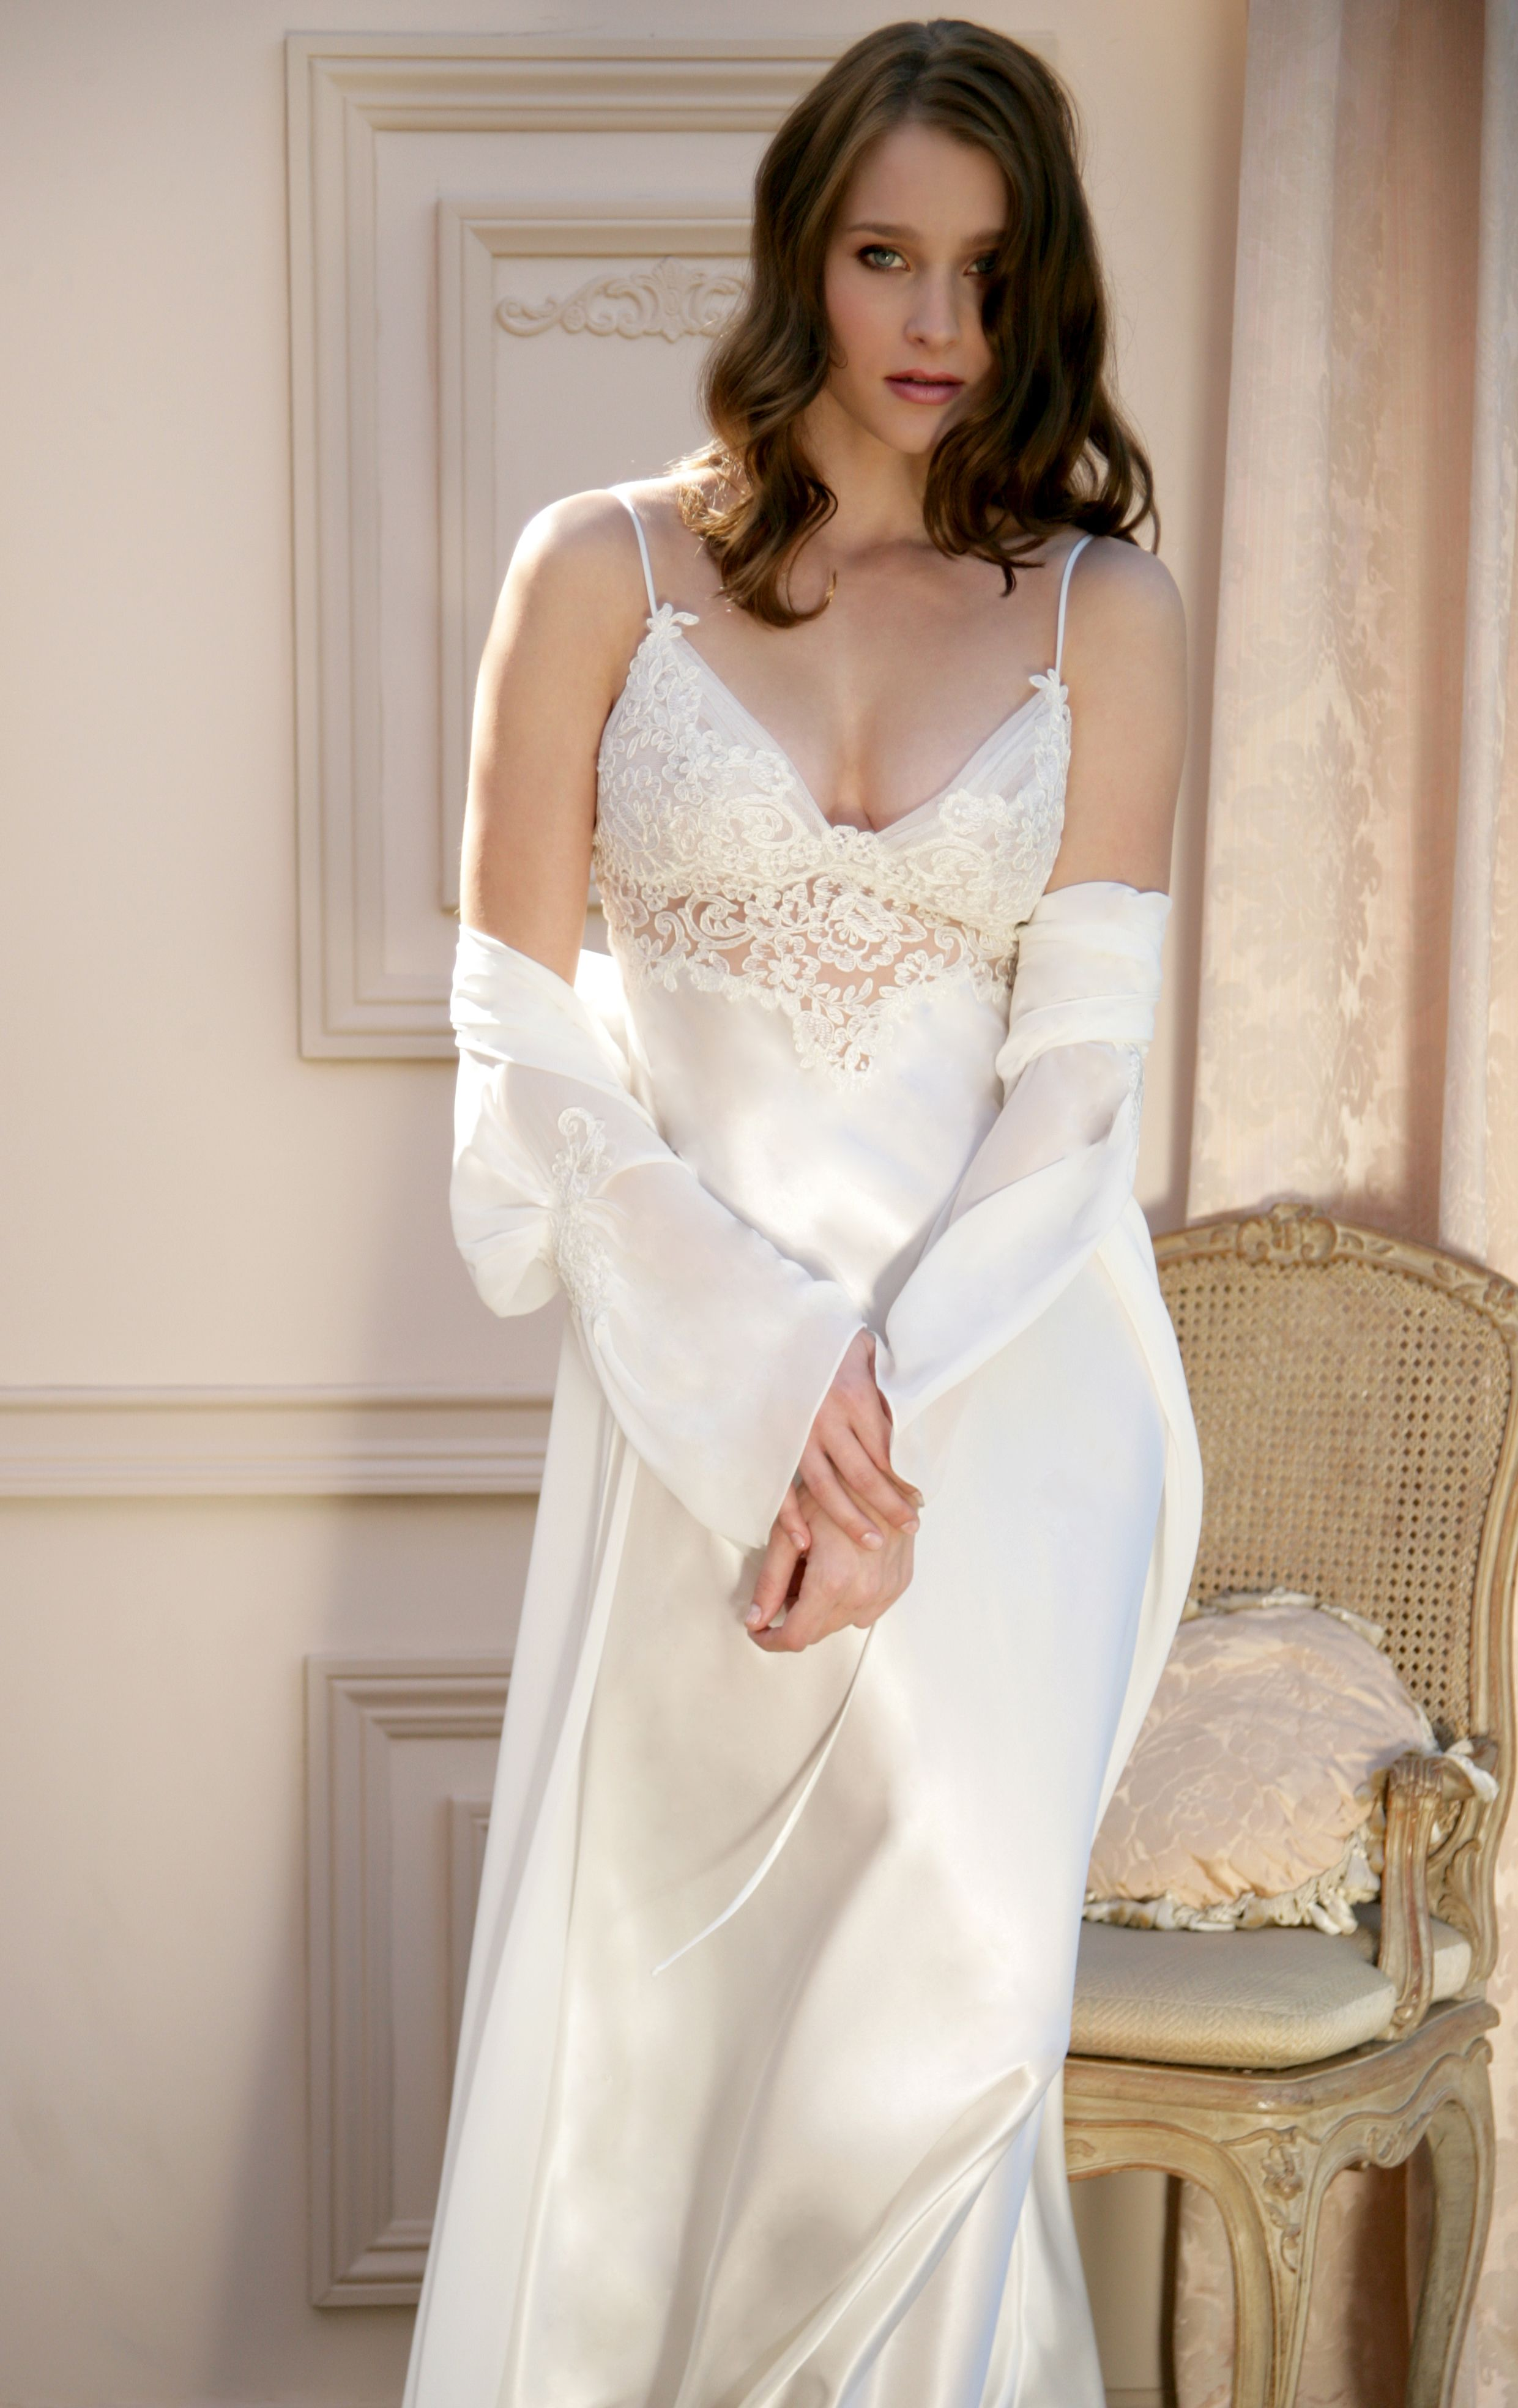 Nightgown and robe robes night gowns pinterest for Night dress for wedding night